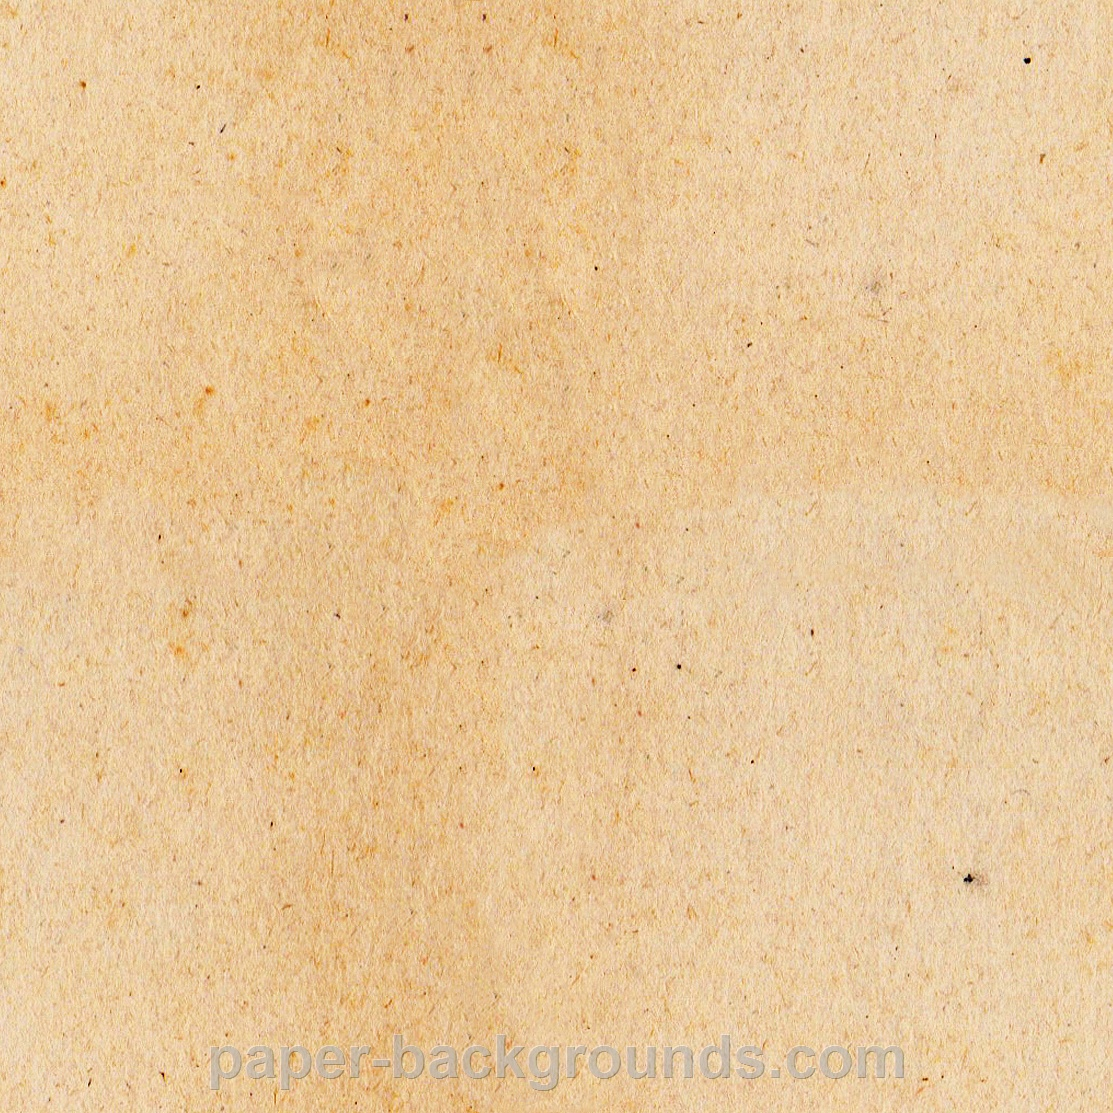 Paper Backgrounds | brown paper texture | Royalty Free HD ...